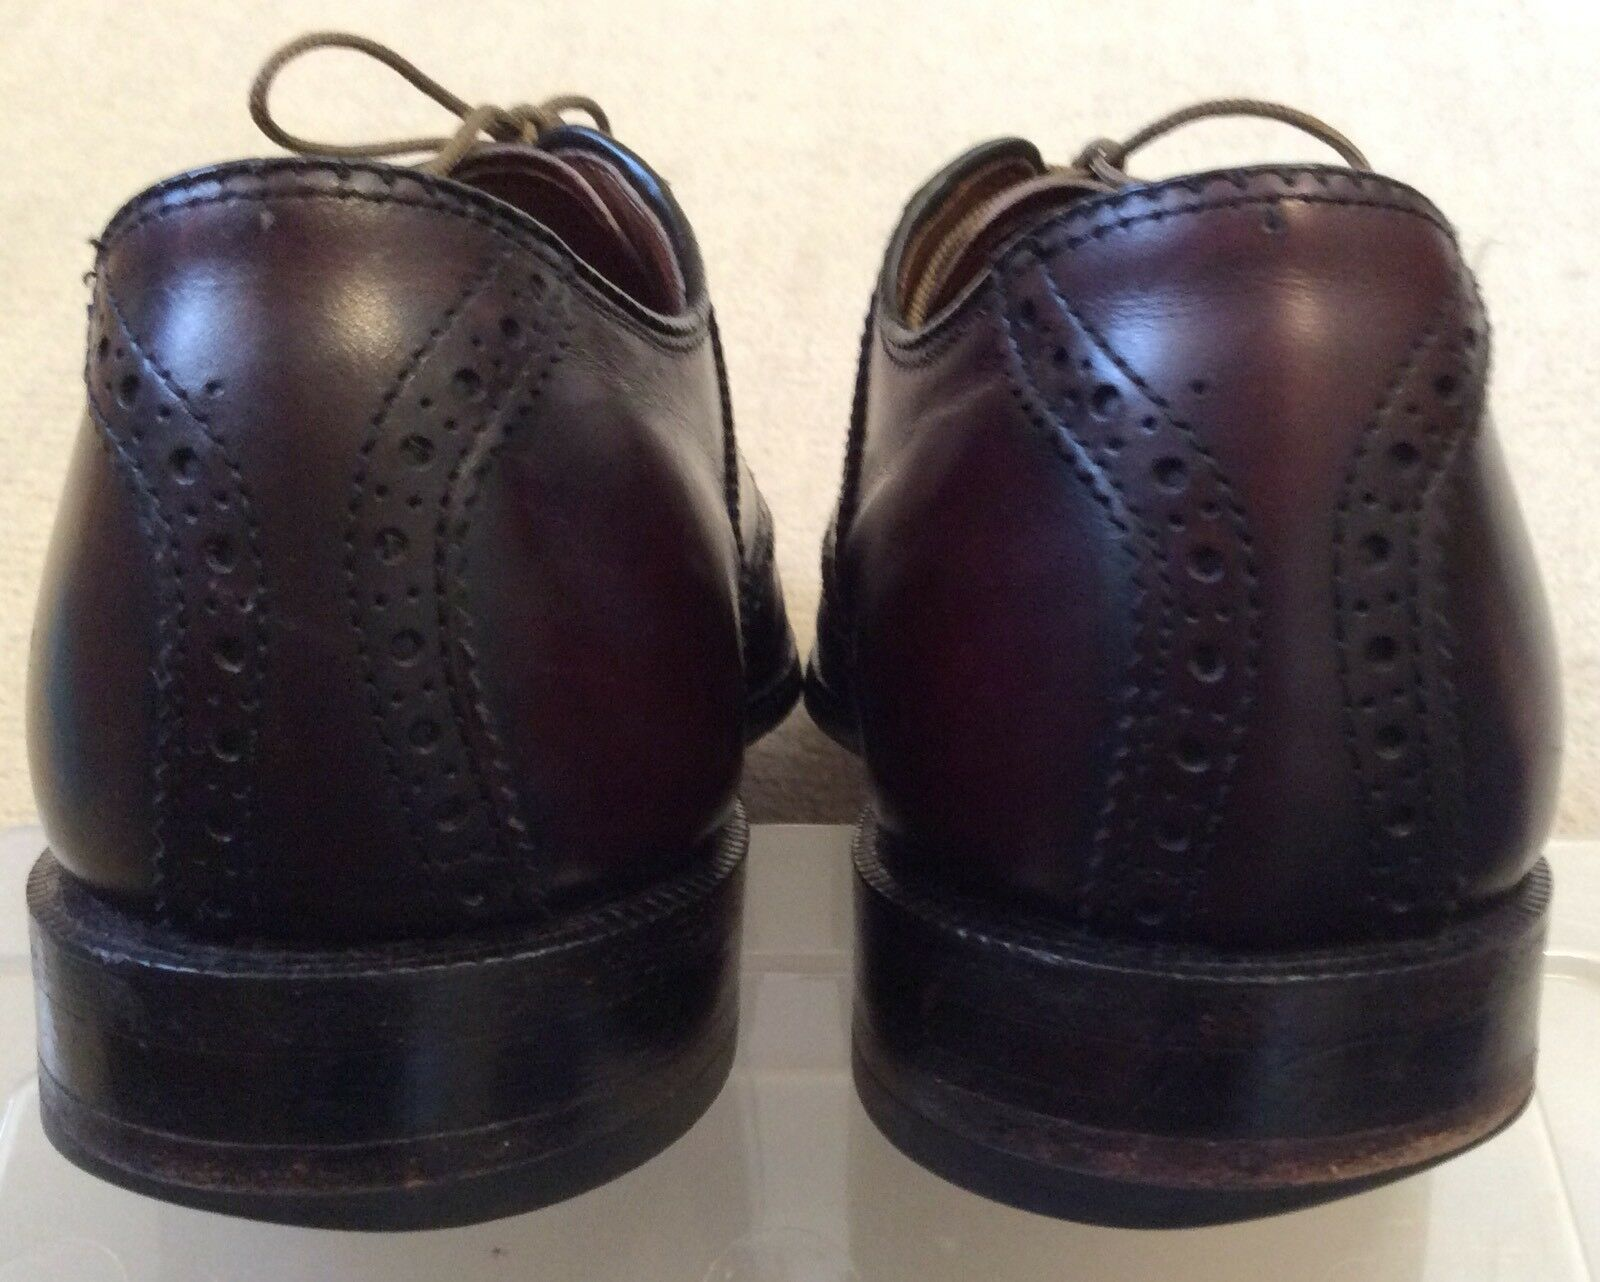 KEITH HIGHLANDERS HIGHLANDERS HIGHLANDERS Grenadiers Pelle Wingtip Oxford Shoes Size 9.5 N Made In  A 659d7a